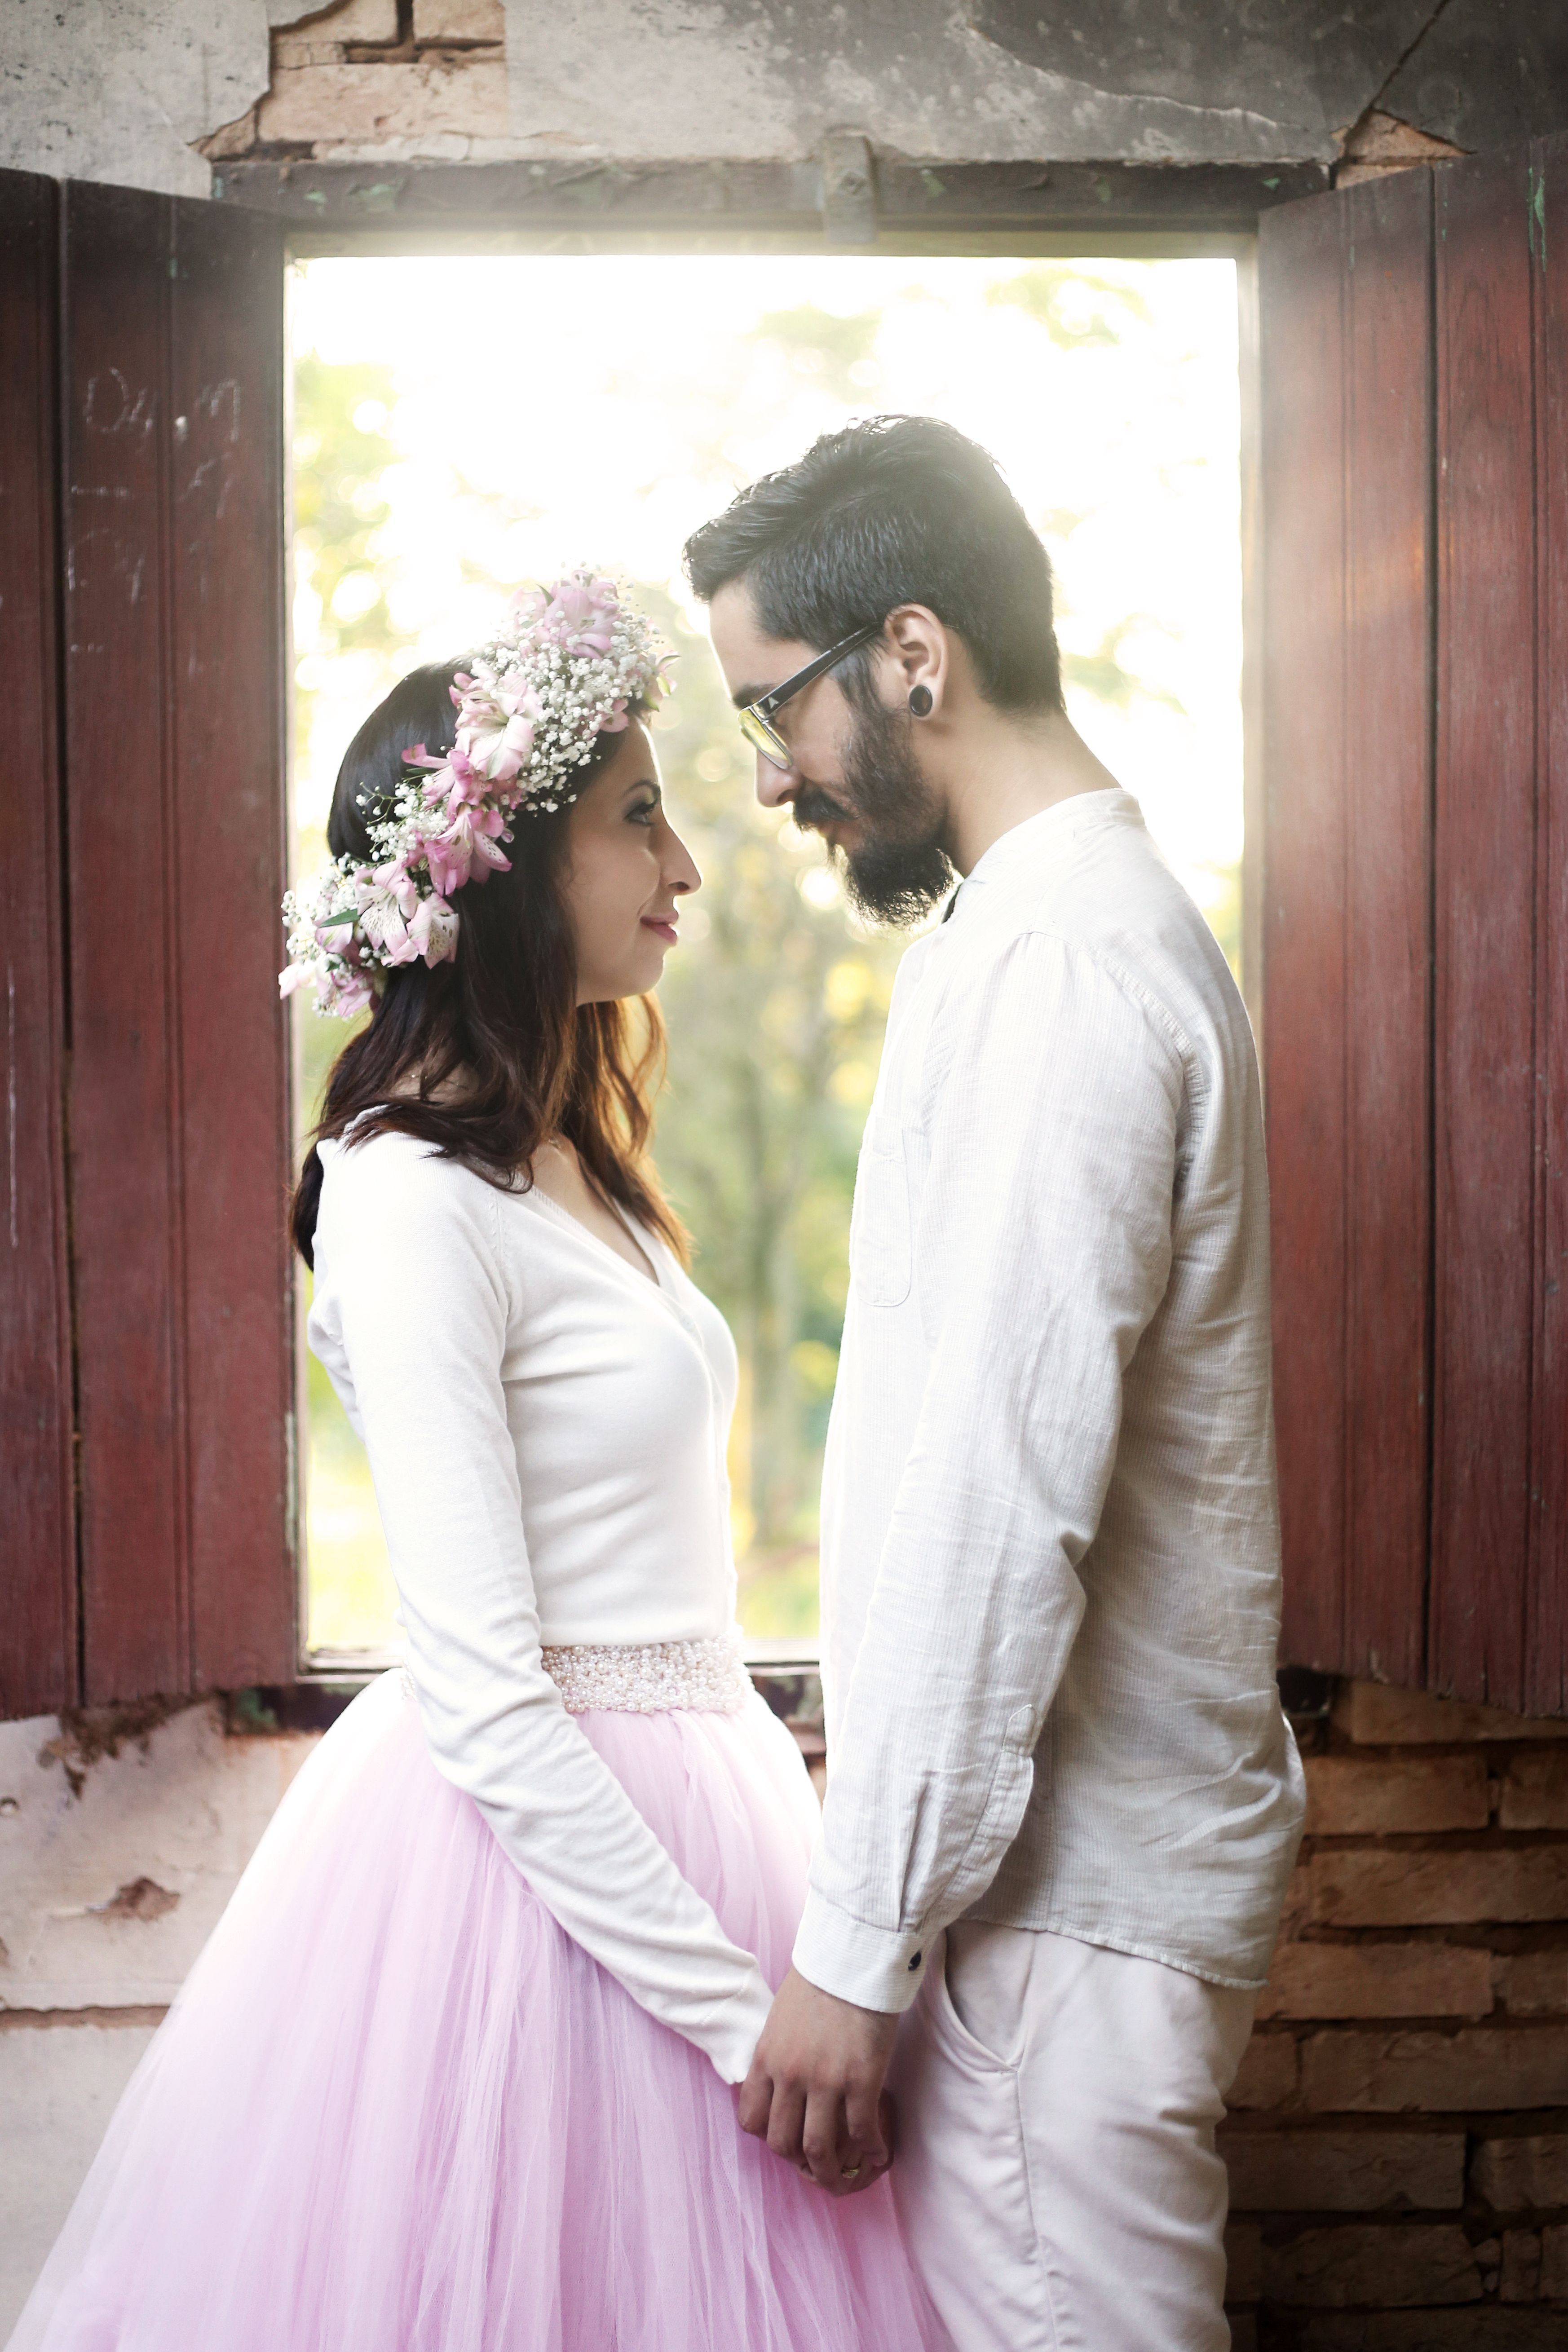 Prewedding couple fairytale love photography dream you and i